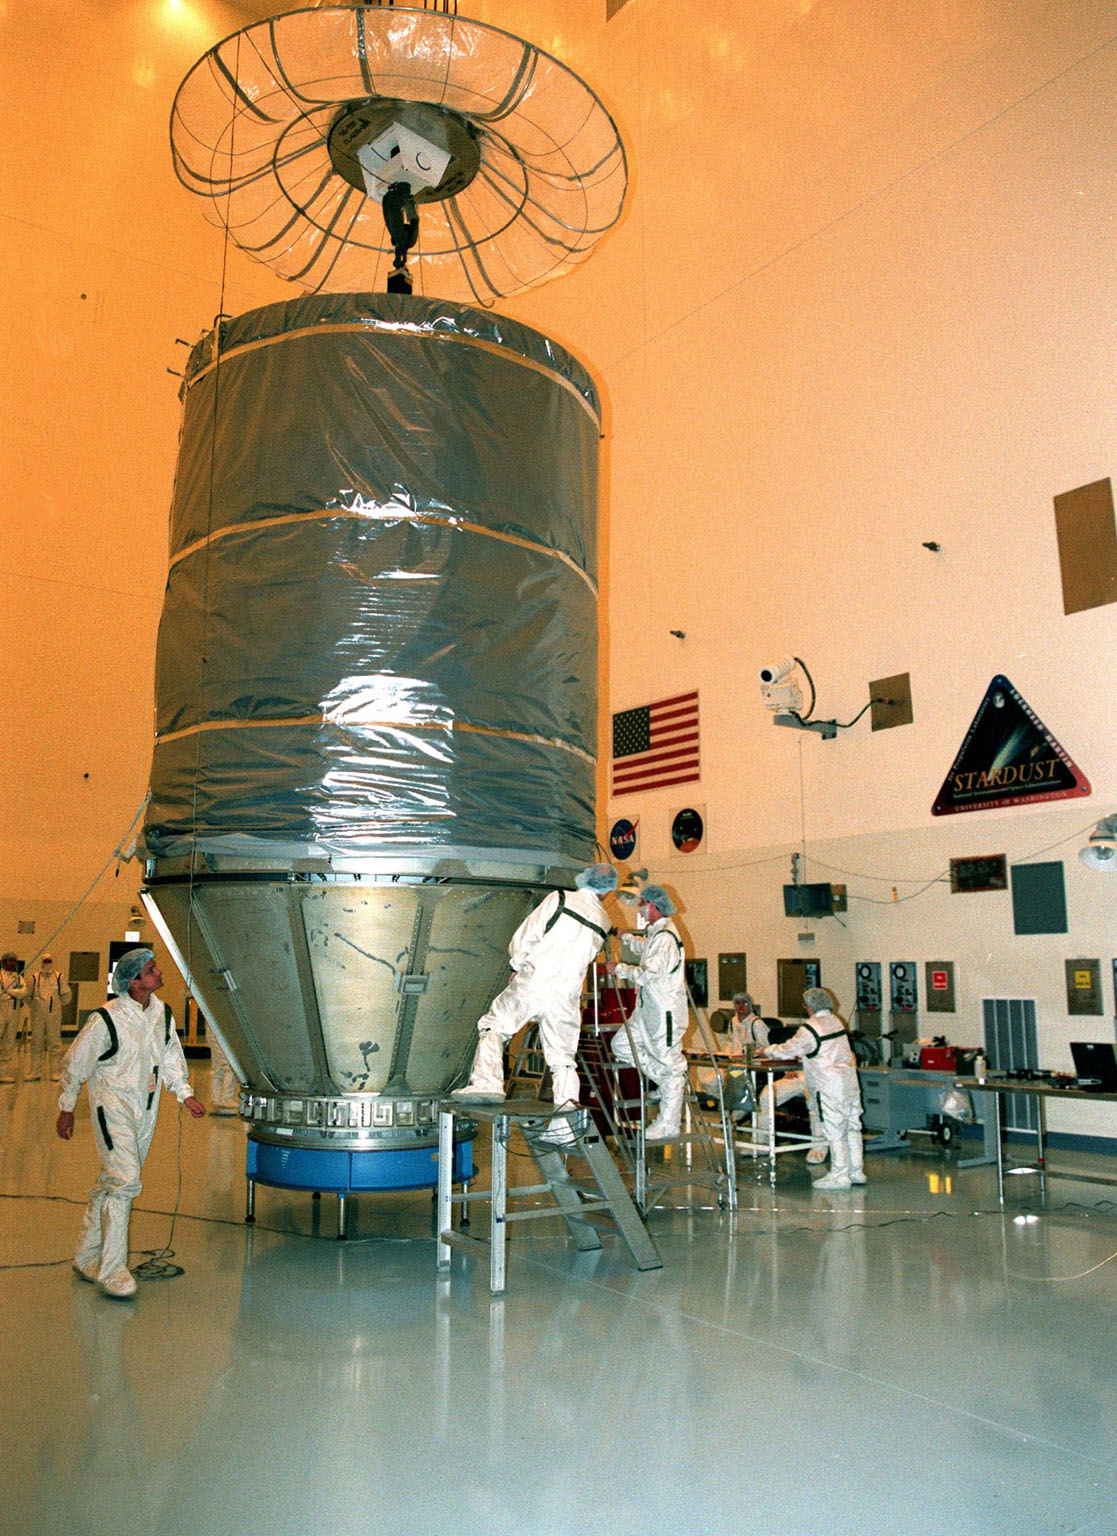 In the Payload Hazardous Servicing Facility, workers check the final adjustments on the protective canister enclosing the Stardust spacecraft. Stardust will be moved to Launch Pad 17-A, Cape Canaveral Air Station, for launch preparations. The spacecraft is targeted for liftoff on Feb. 6 aboard a Boeing Delta II rocket for a close encounter with the comet Wild 2 in January 2004. Using a silicon-based substance called aerogel, Stardust will capture comet particles flying off the nucleus of the comet. The spacecraft also will bring back samples of interstellar dust. These materials consist of ancient pre-solar interstellar grains and other remnants left over from the formation of the solar system. Scientists expect their analysis to provide important insights into the evolution of the sun and planets and possibly into the origin of life itself. The collected samples will return to Earth in a sample return capsule to be jettisoned as Stardust swings by Earth in January 2006